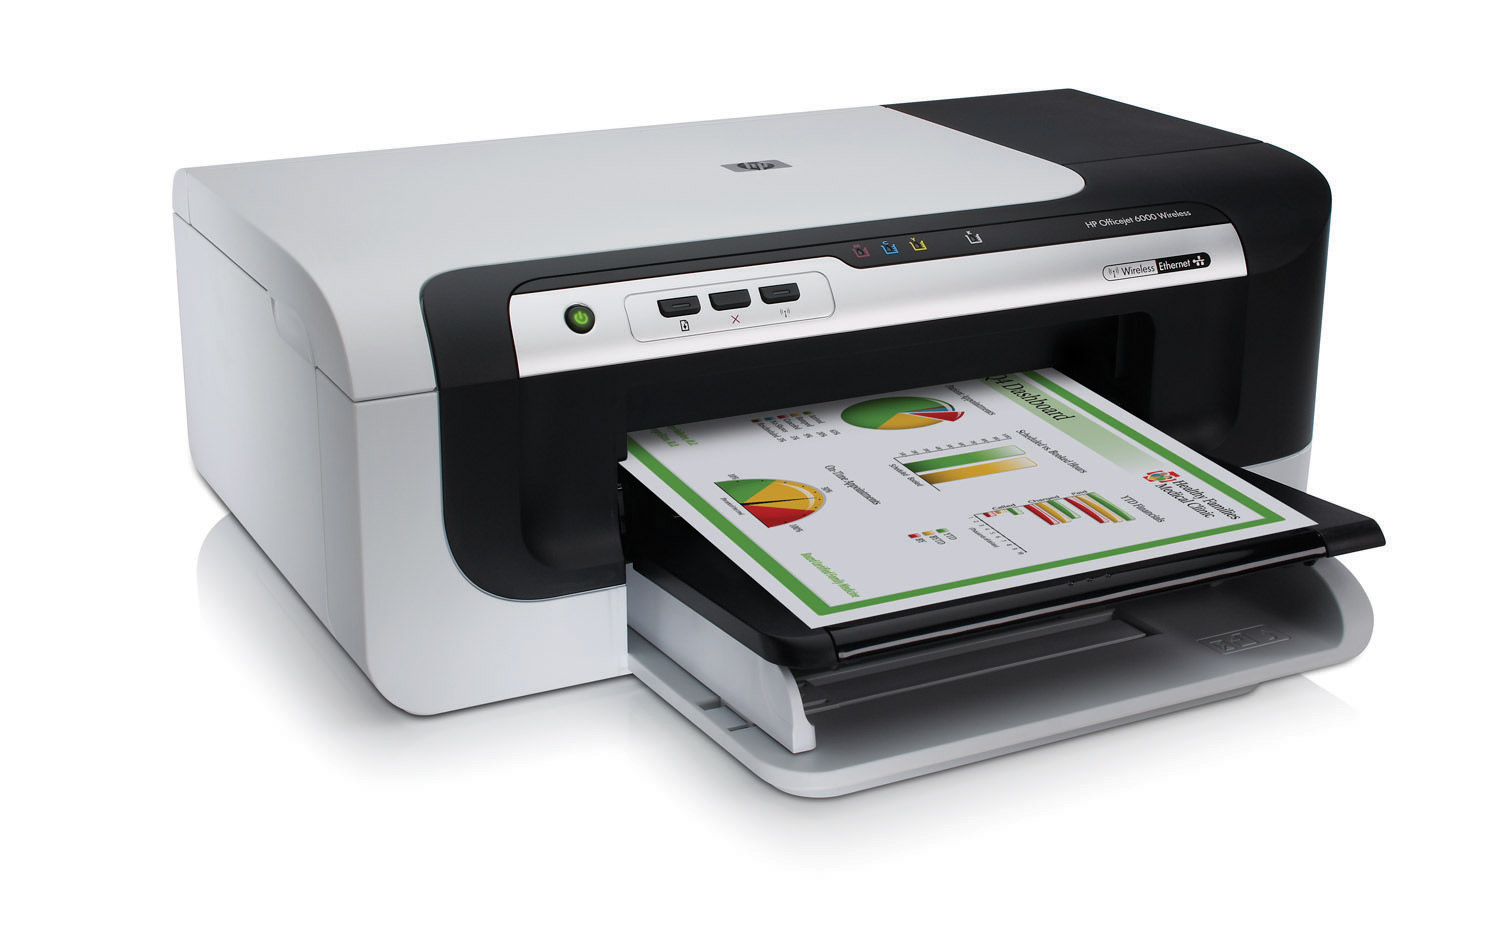 ΕΚΤΥΠΩΤΗΣ Inkjet HP Officejet 6000N CB051A ΕΓΧΡΩΜΟΣ COLOR PRINTER 4800 X 1200 Dpi